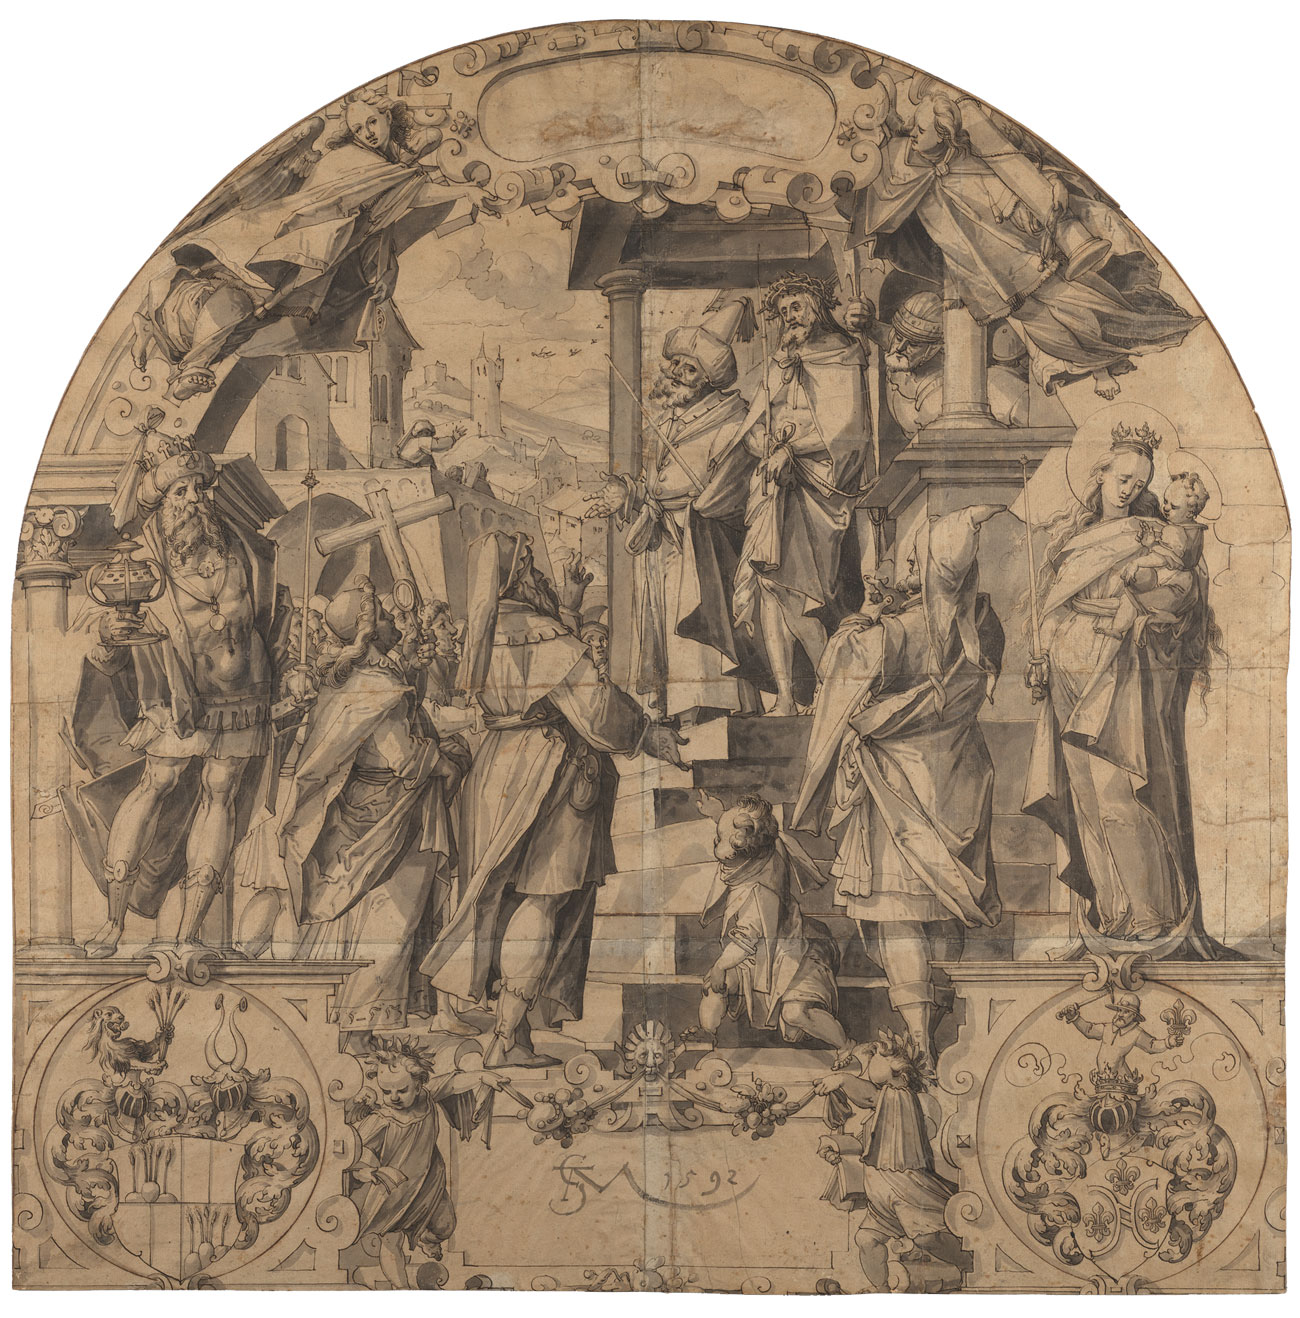 A complete view of a sketch of the judgement of Christ, a detailed scene with a crowd framed by a stone arch carved with sculpted figures and crests, with angels above.